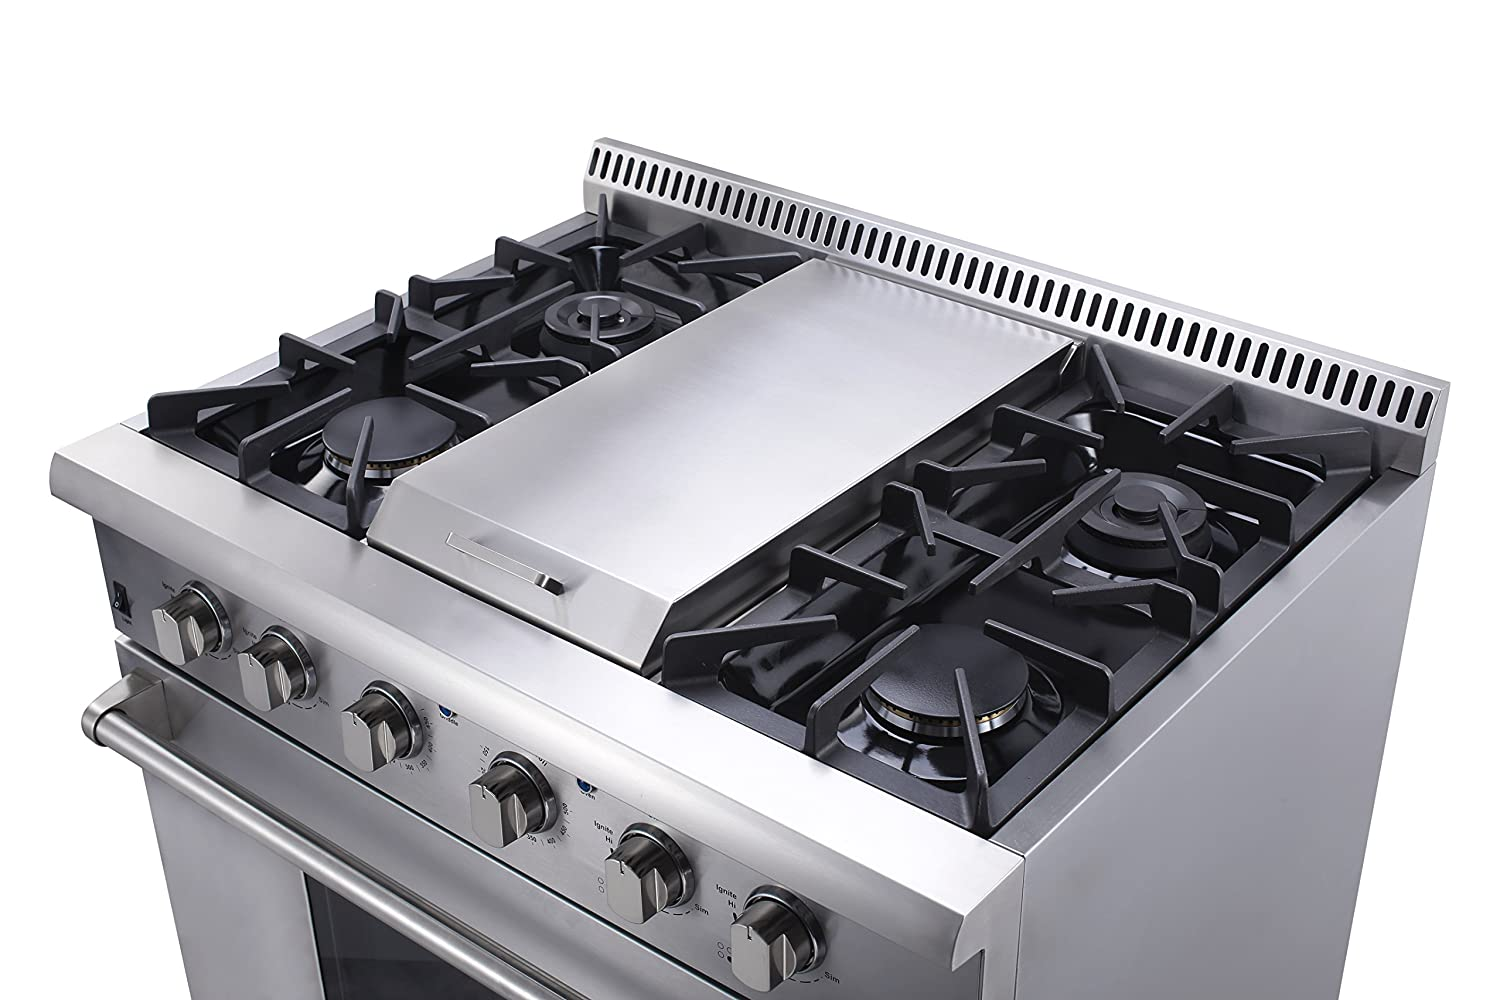 gas cooktop with grill. Amazon.com: Thorkitchen HRG3617U 36\ Gas Cooktop With Grill